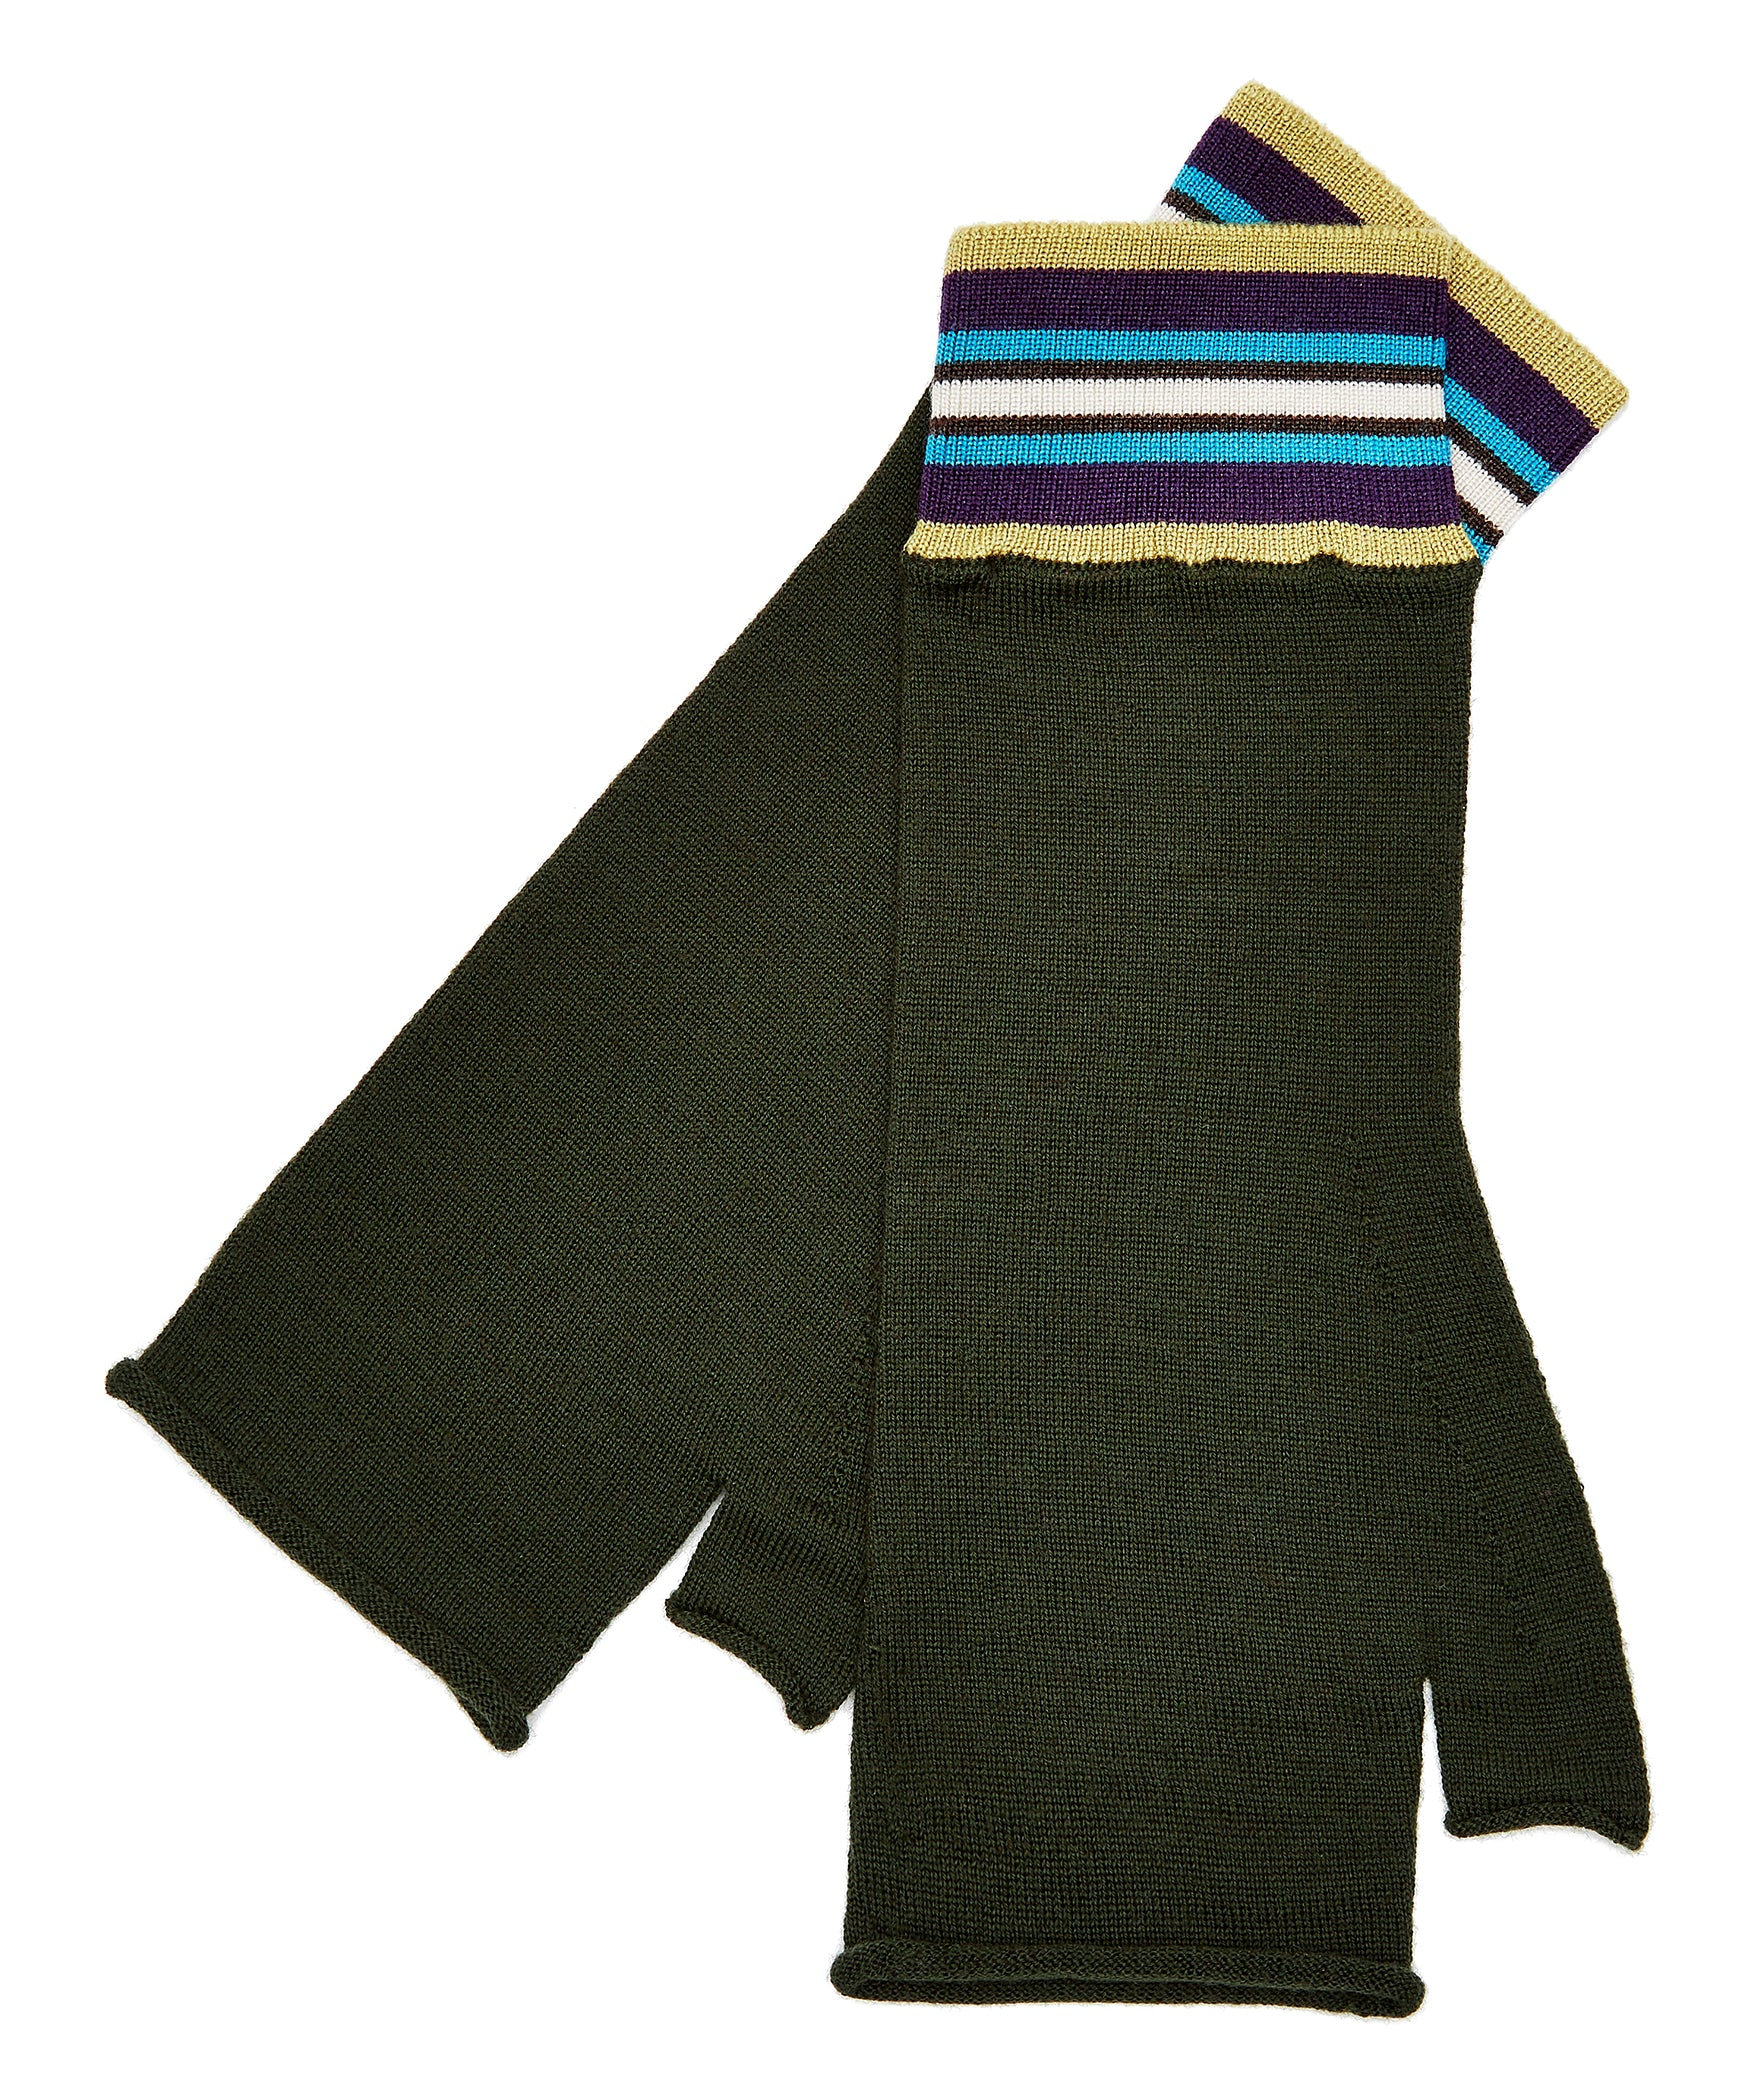 Olive Green Extrafine Merino Fingerless Gloves